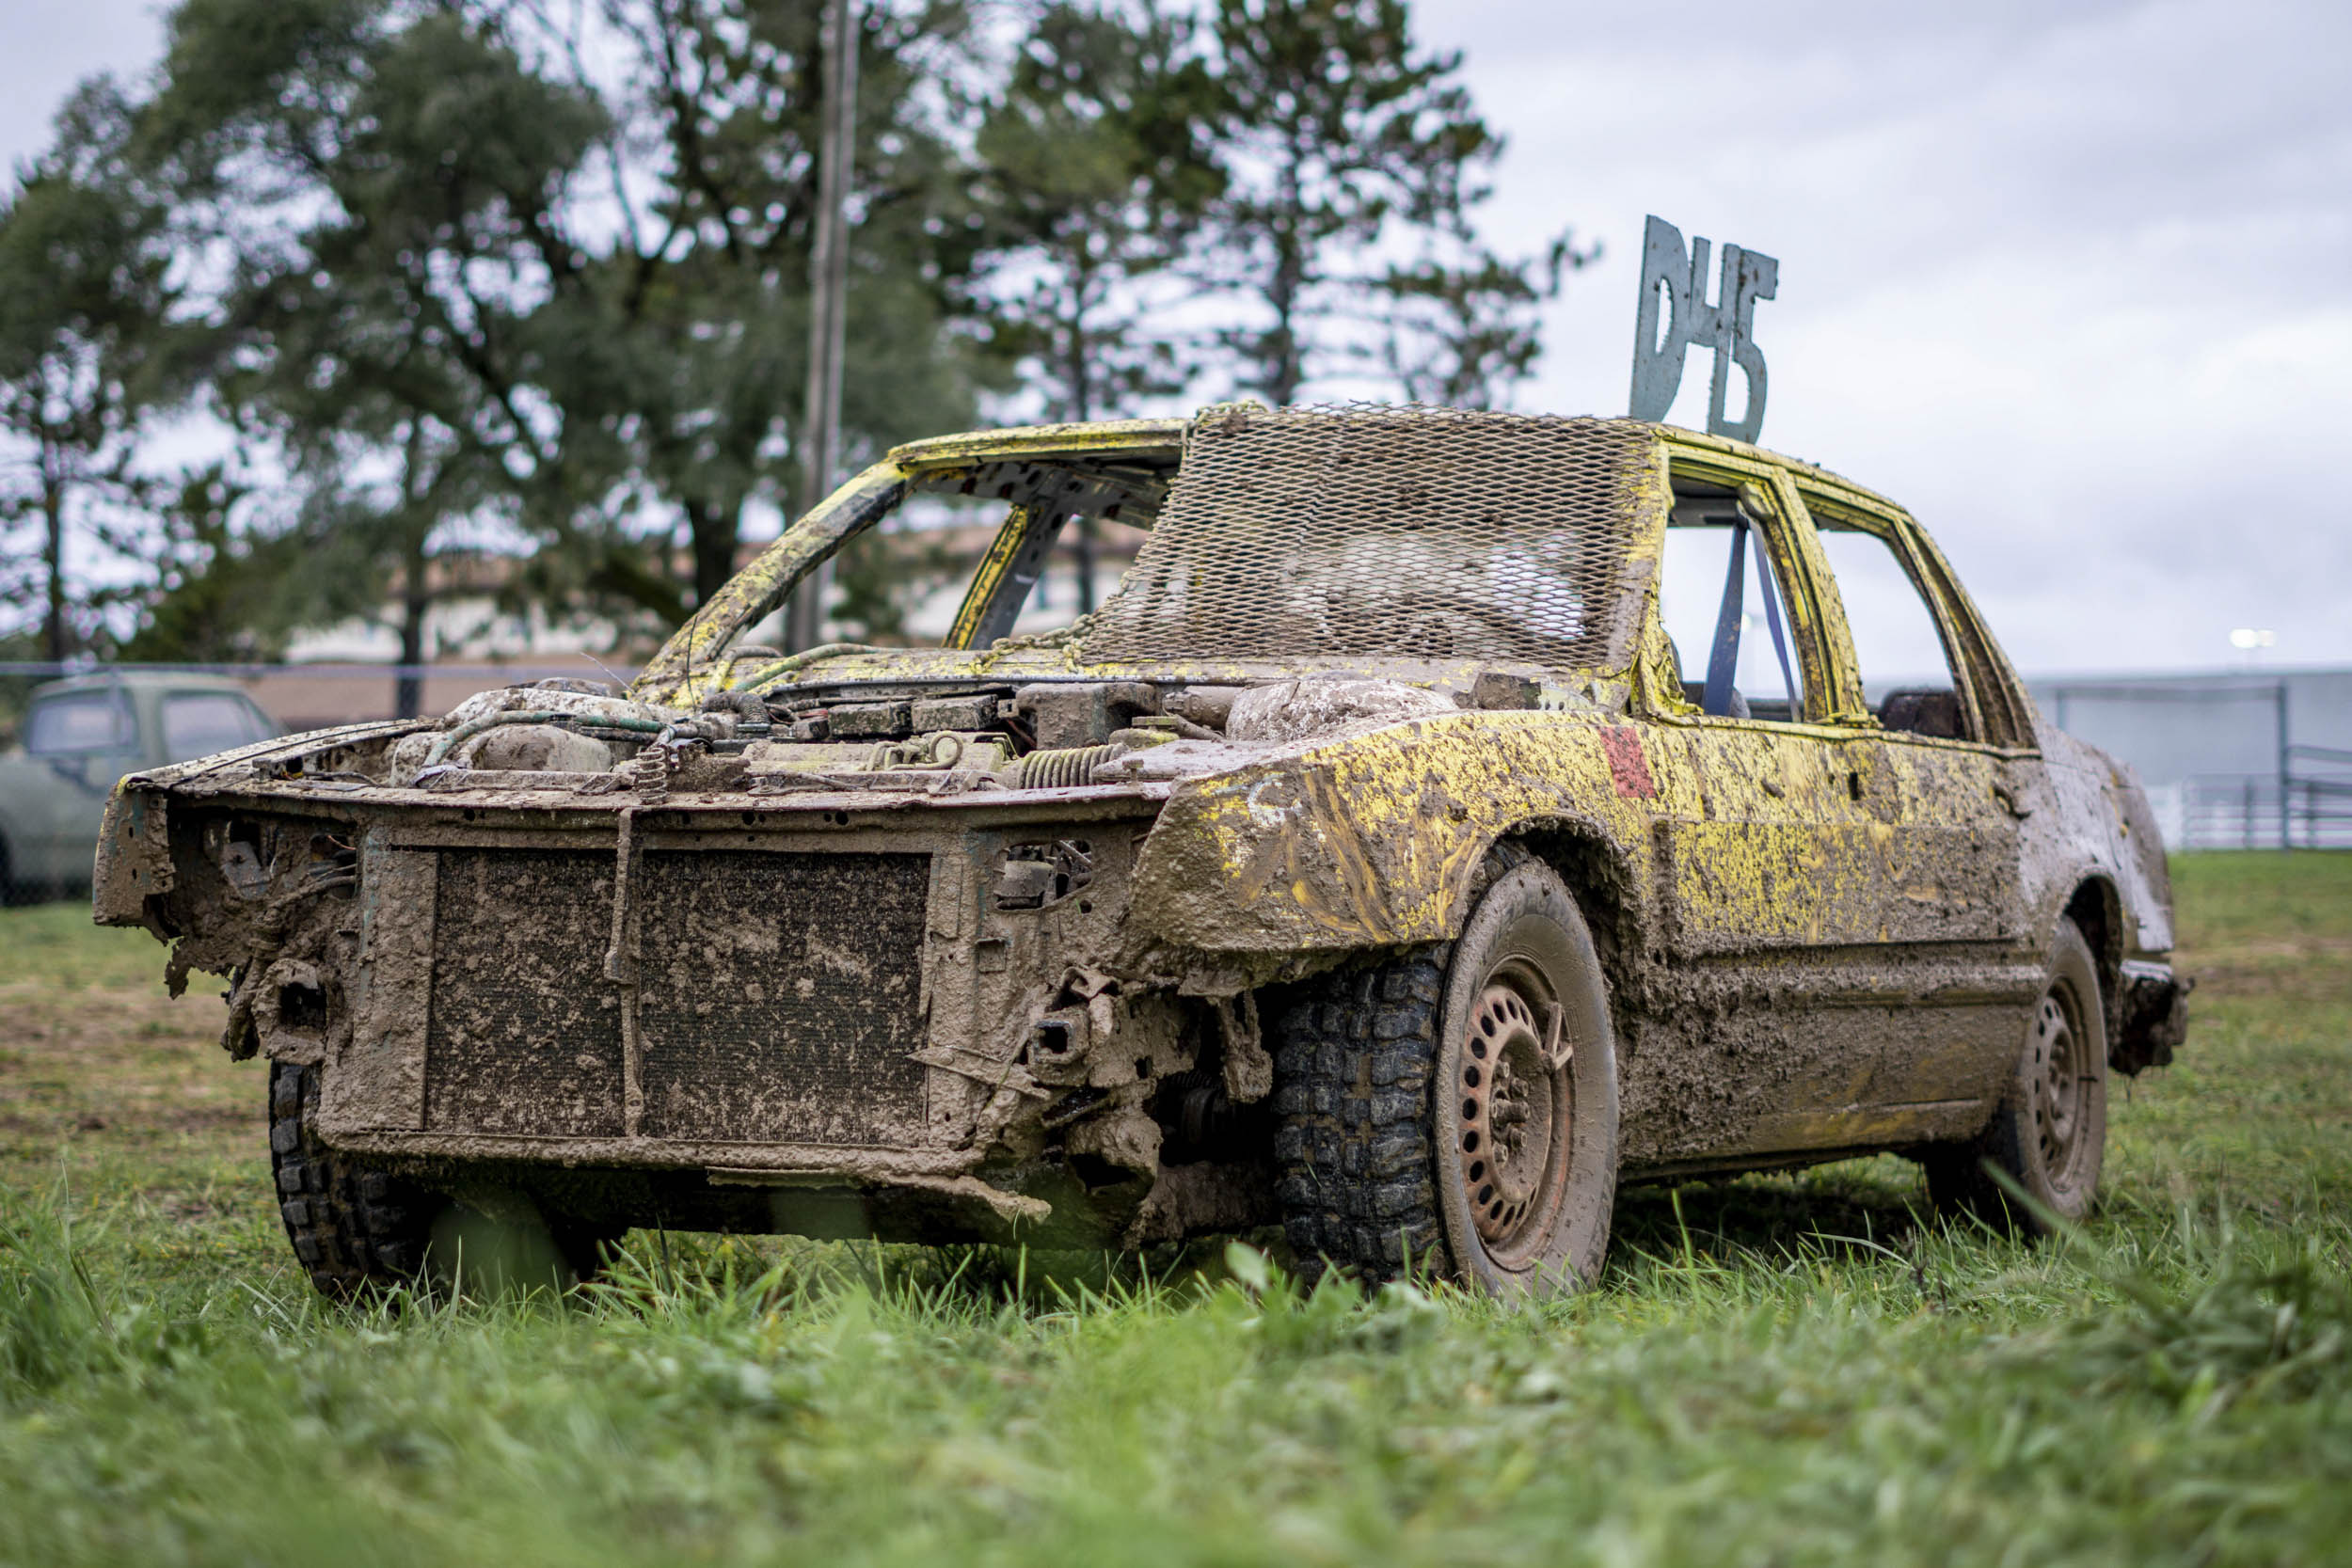 mud covered demolition derby car